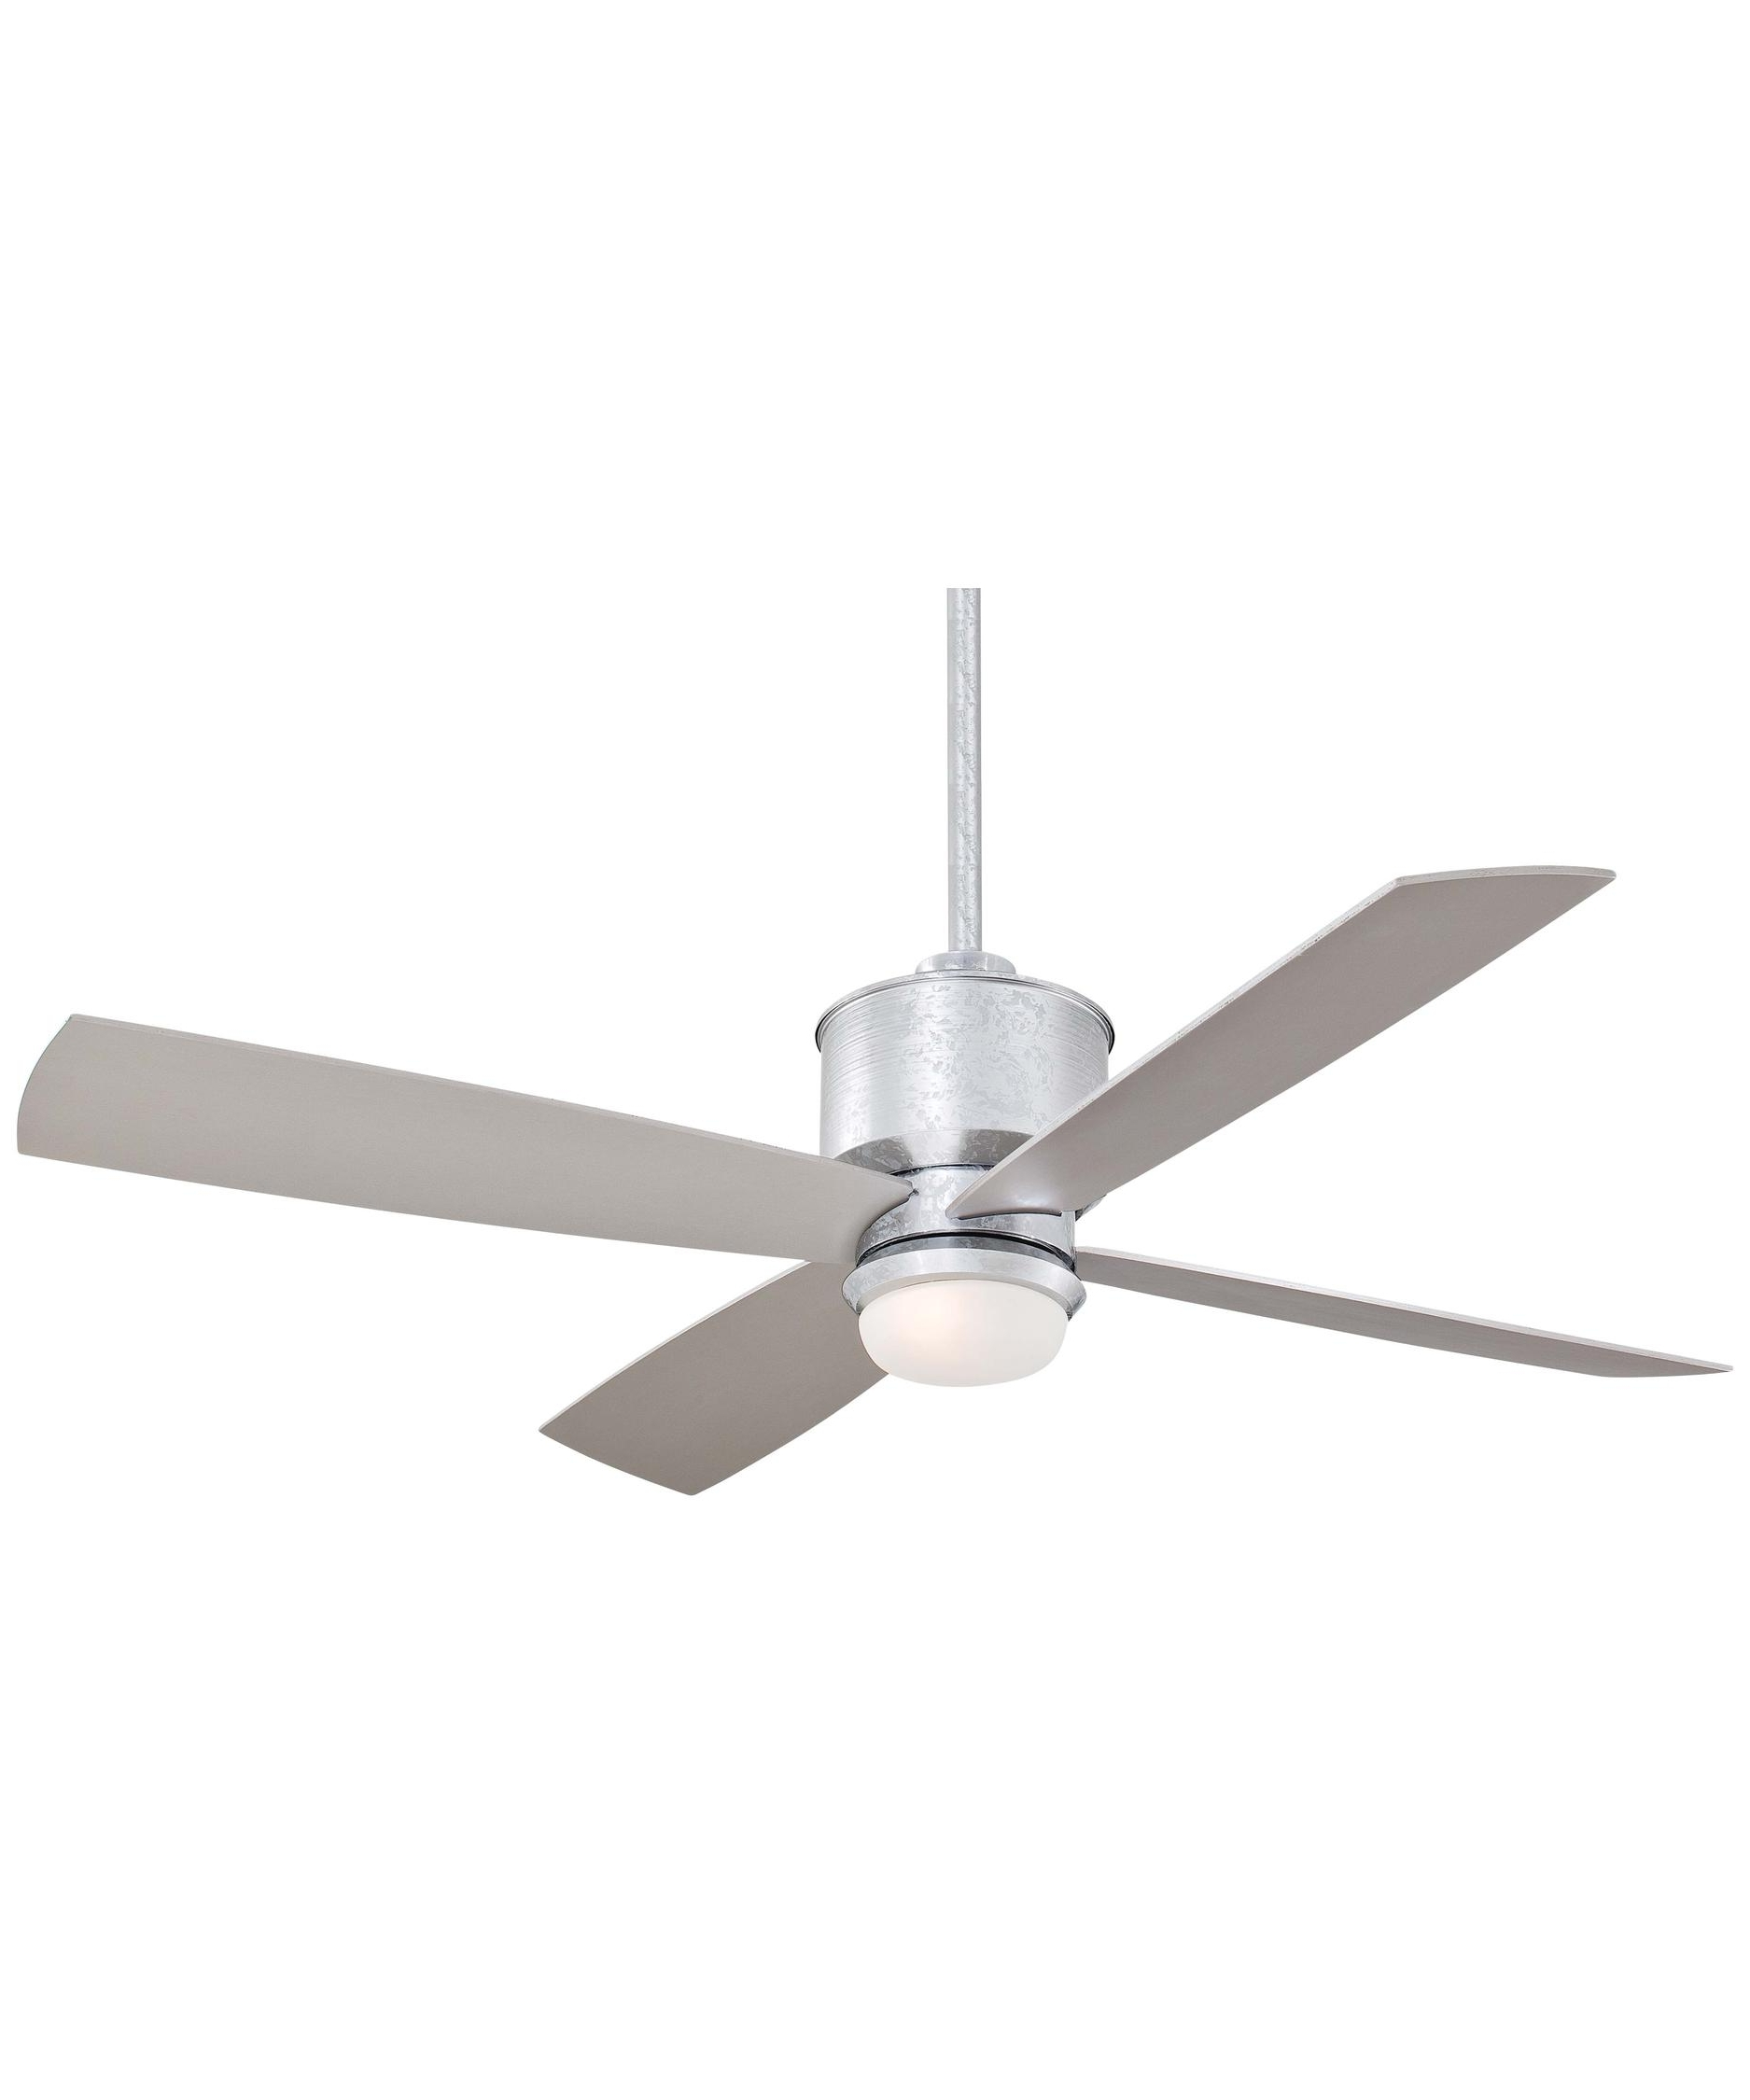 Capitol Regarding Trendy 52 Inch Outdoor Ceiling Fans With Lights (View 9 of 20)